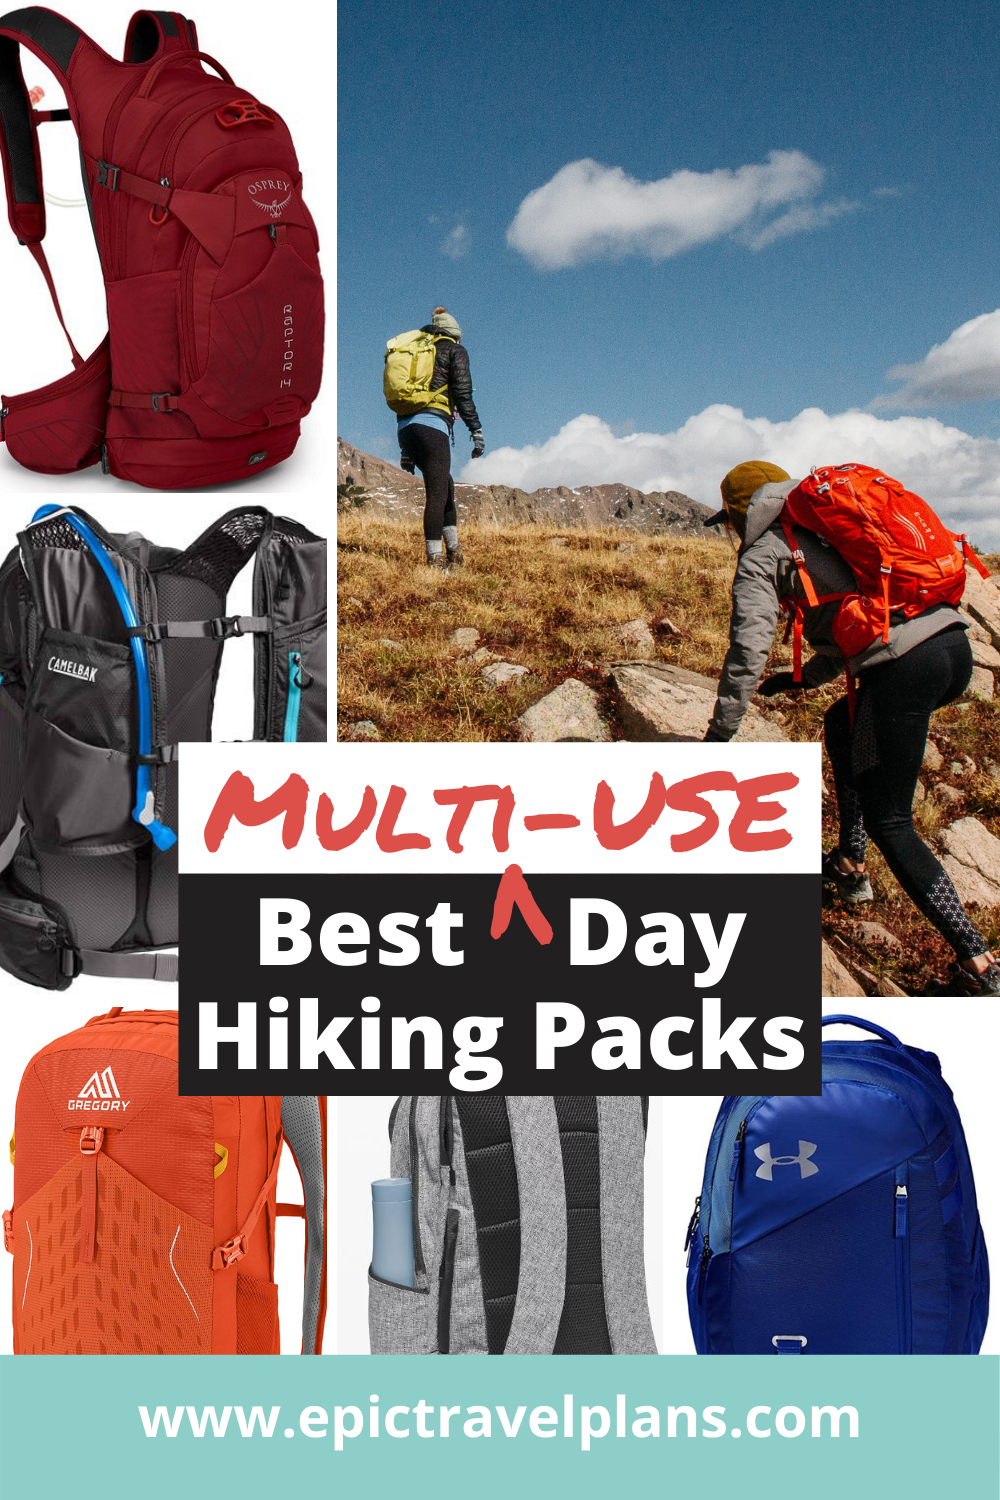 Best day hiking packs, backpacks for day hiking